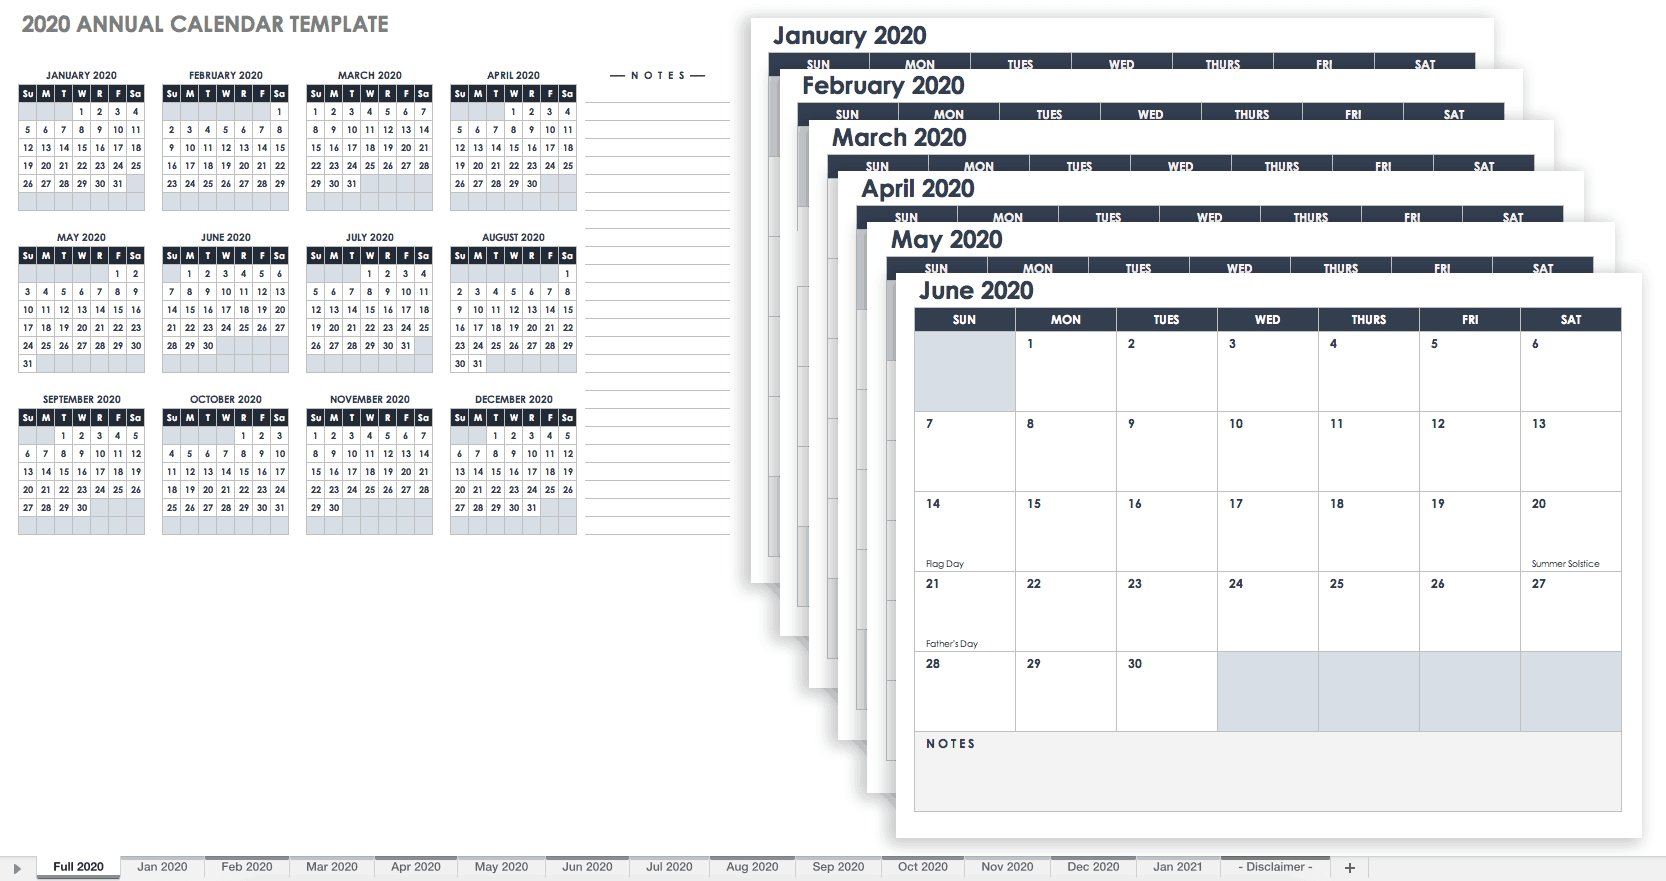 Free Blank Calendar Templates - Smartsheet With 12 Mo Calendar Template One Page No Dates